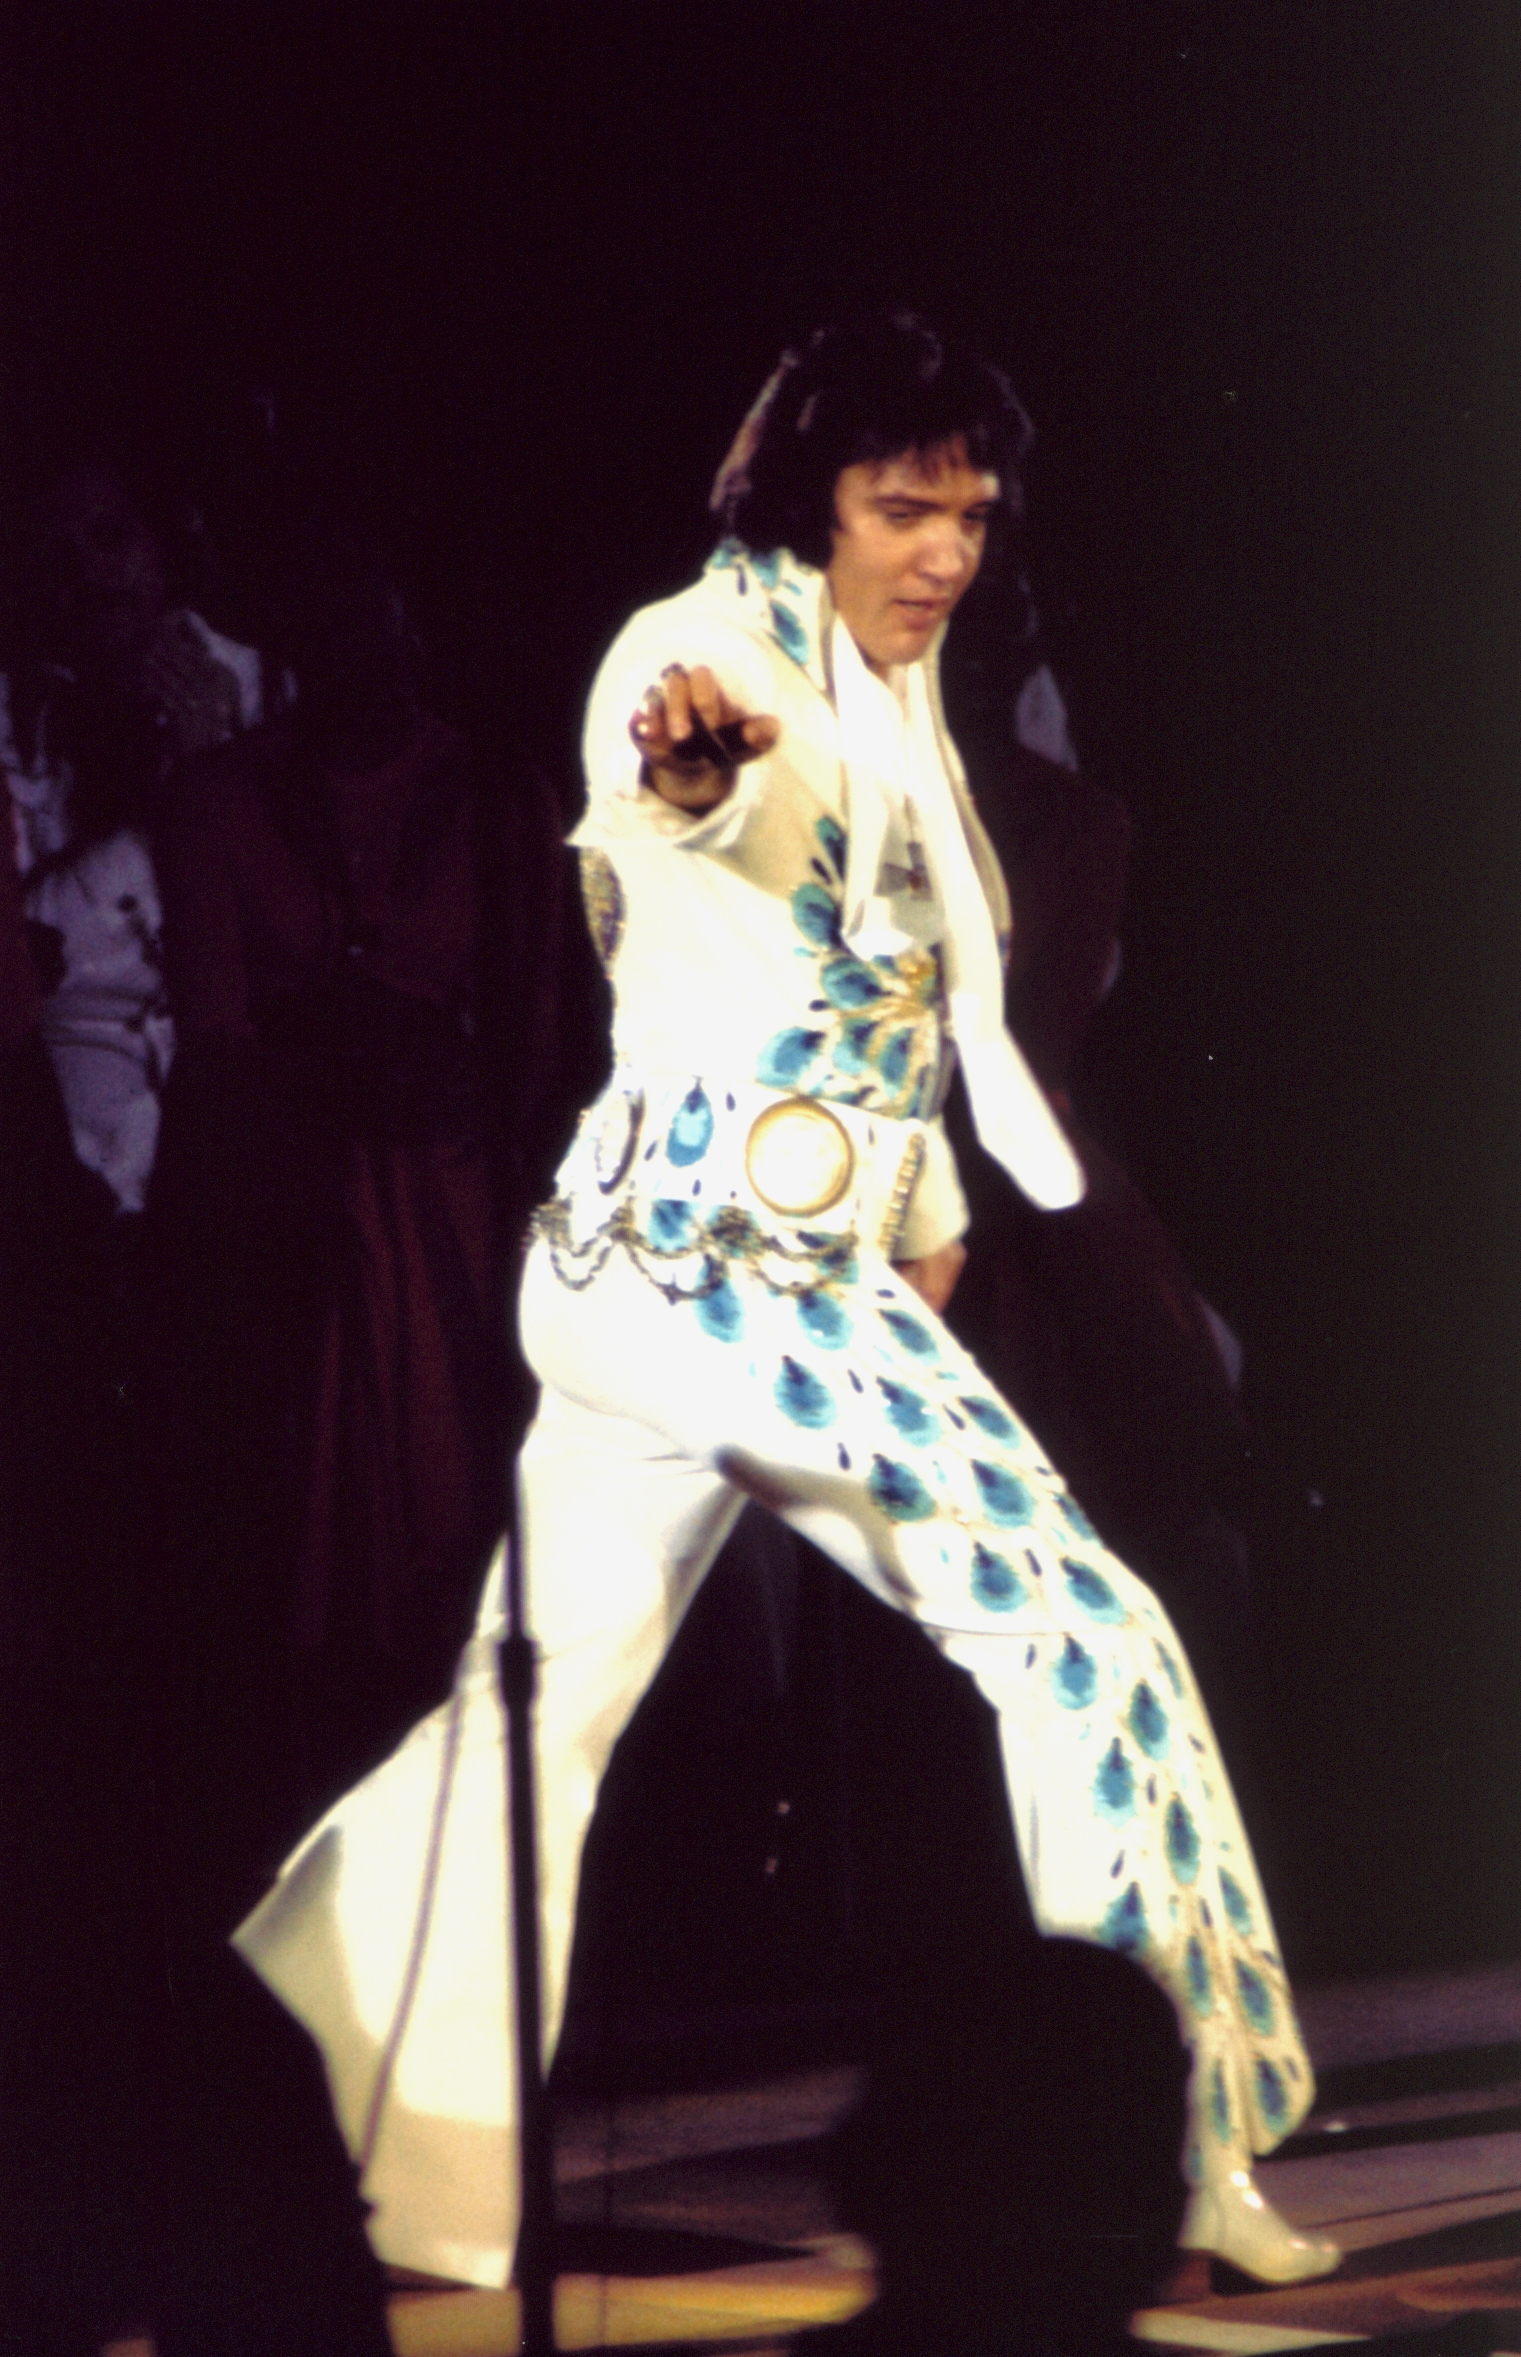 https://i2.wp.com/www.elvisconcerts.com/pictures/s74062604.jpg